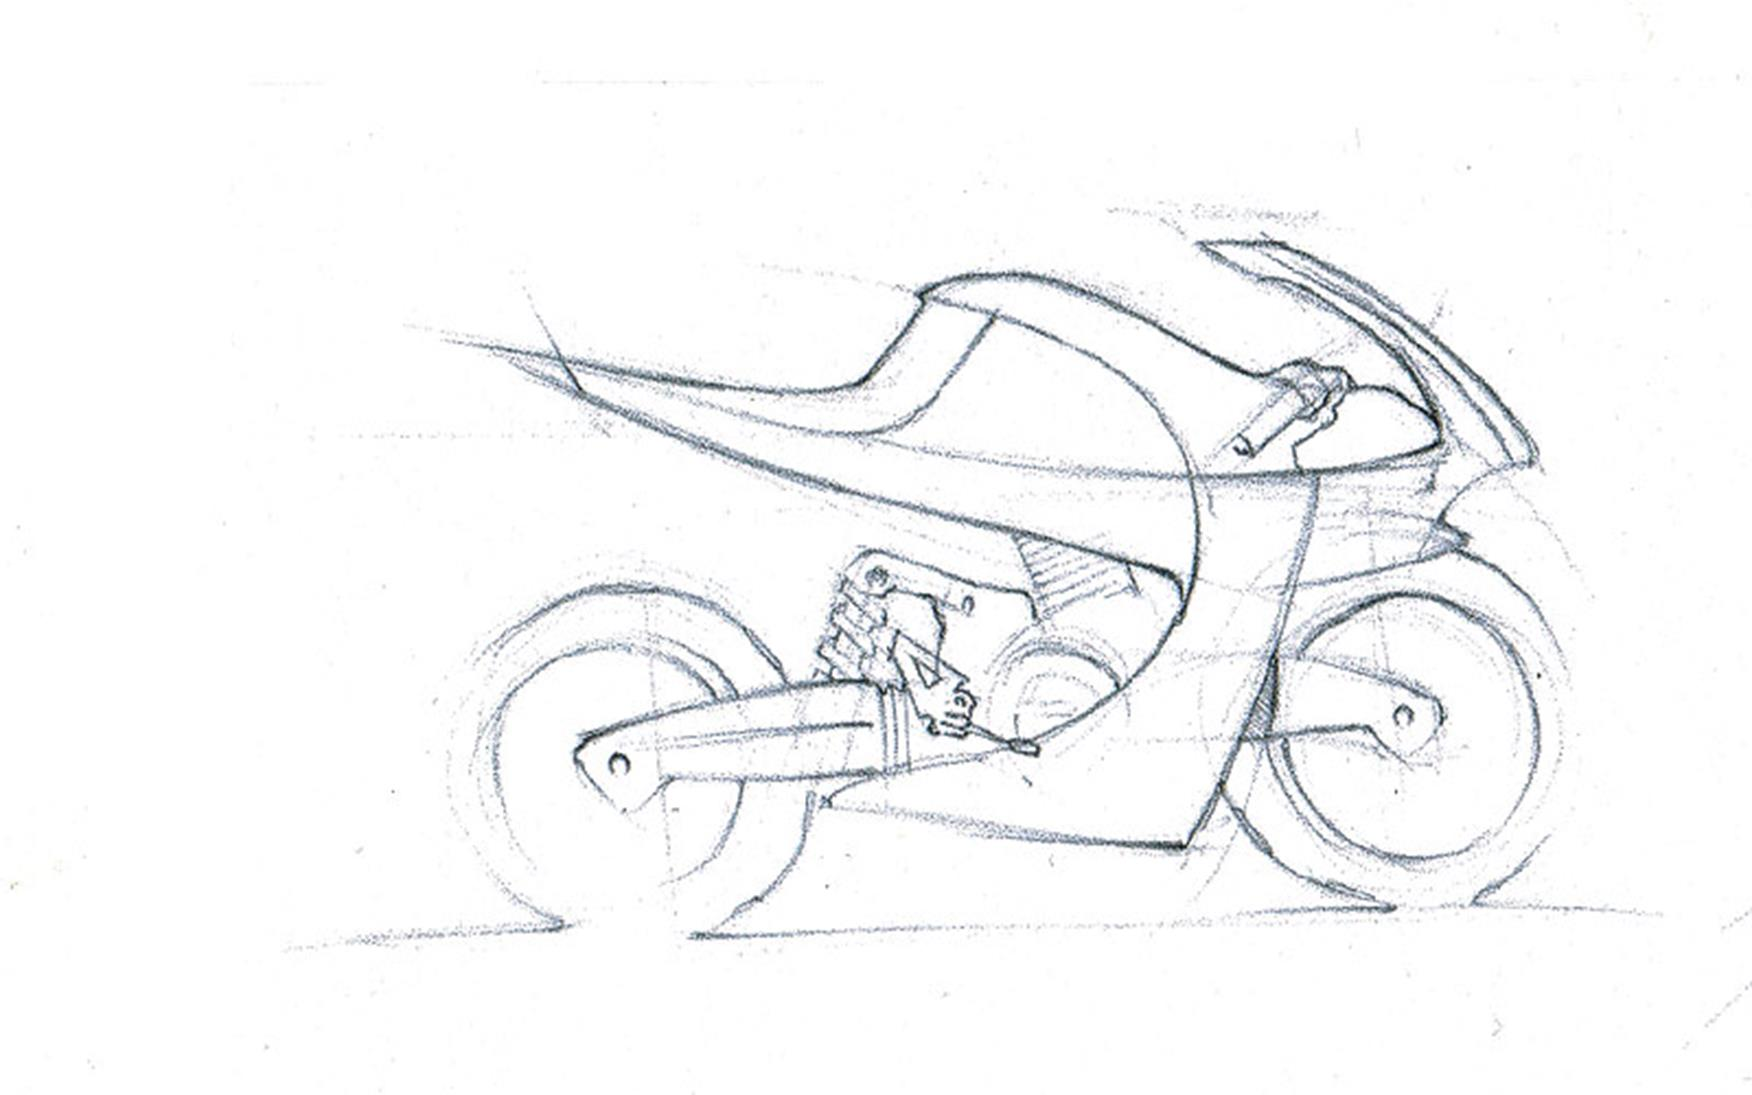 What motorcycle do you want Ariel to build?